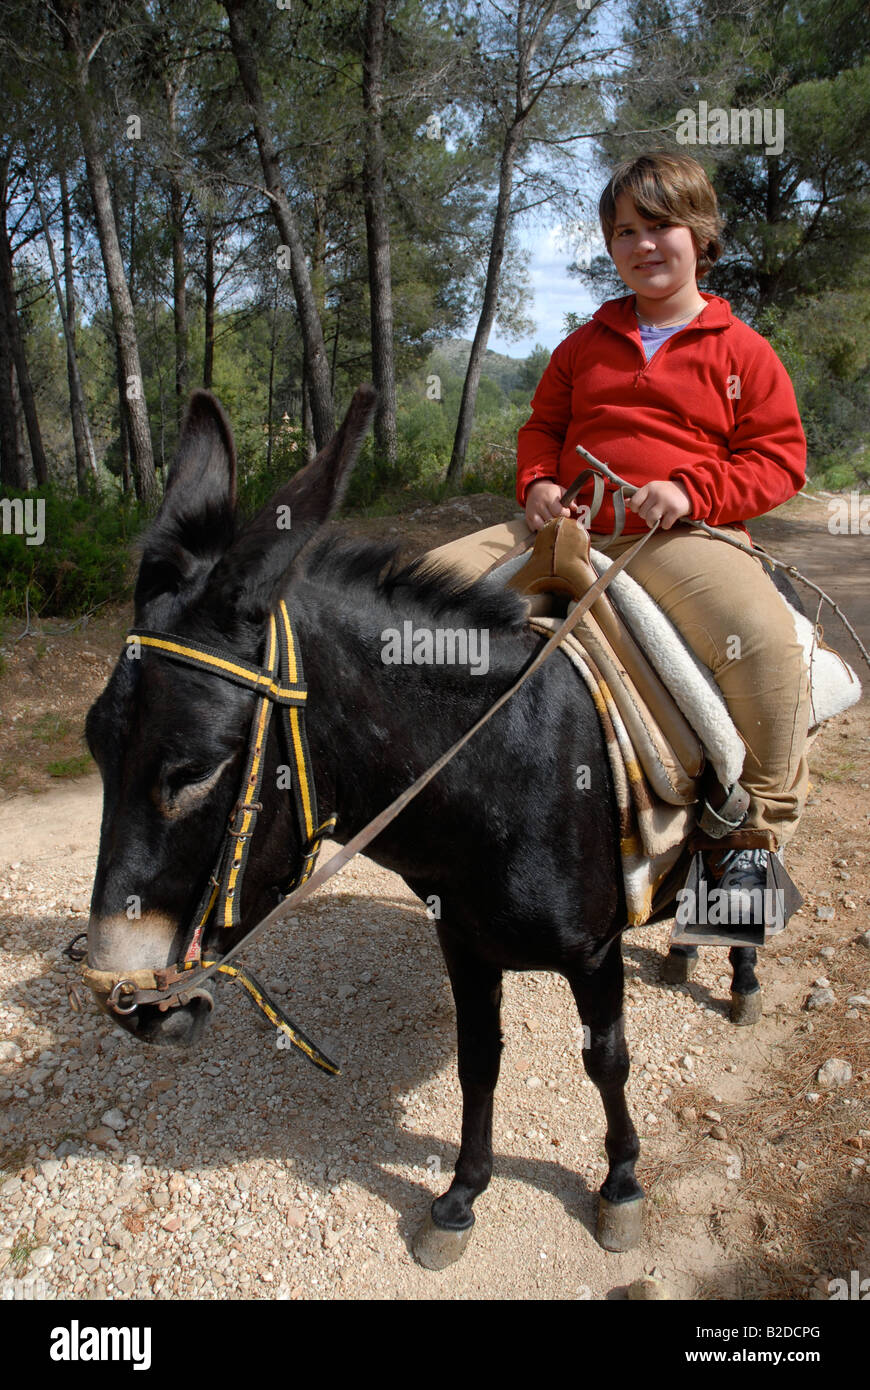 young girl riding a donkey, near Campell, Marina Alta, Alicante Province, Comunidad Valenciana, Spain - Stock Image